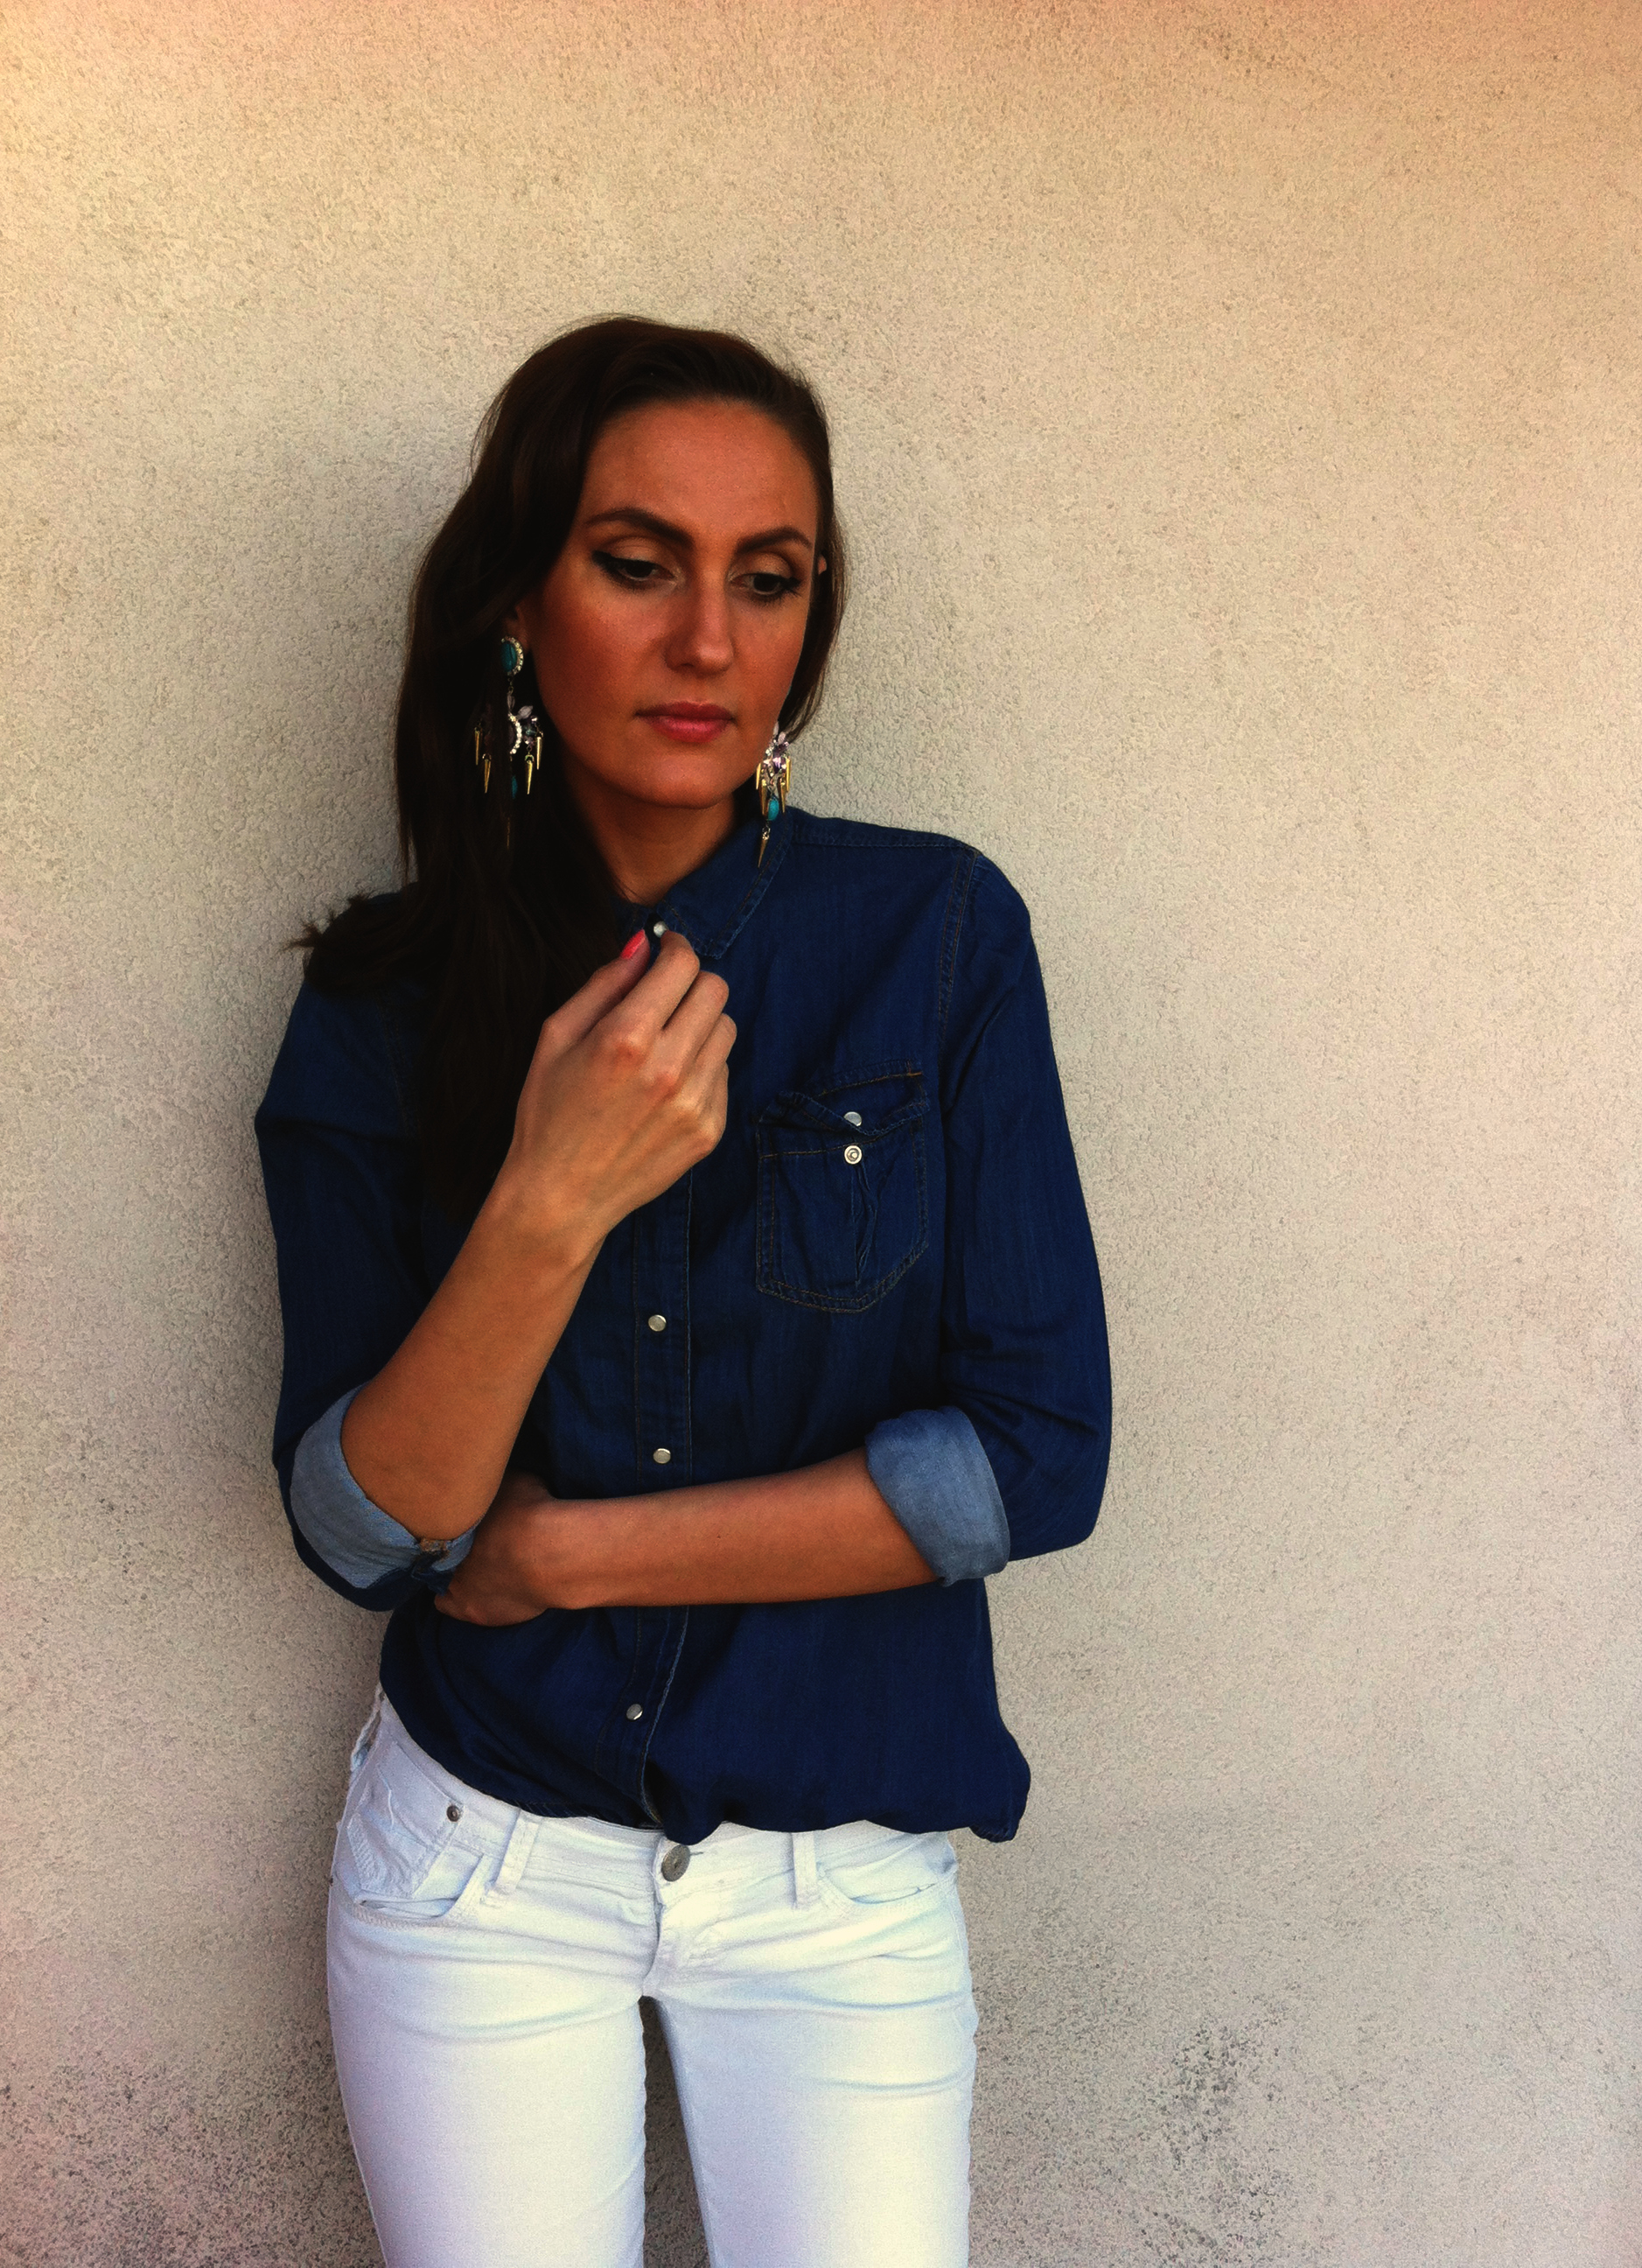 denim-shirt-white-jeans-earrings